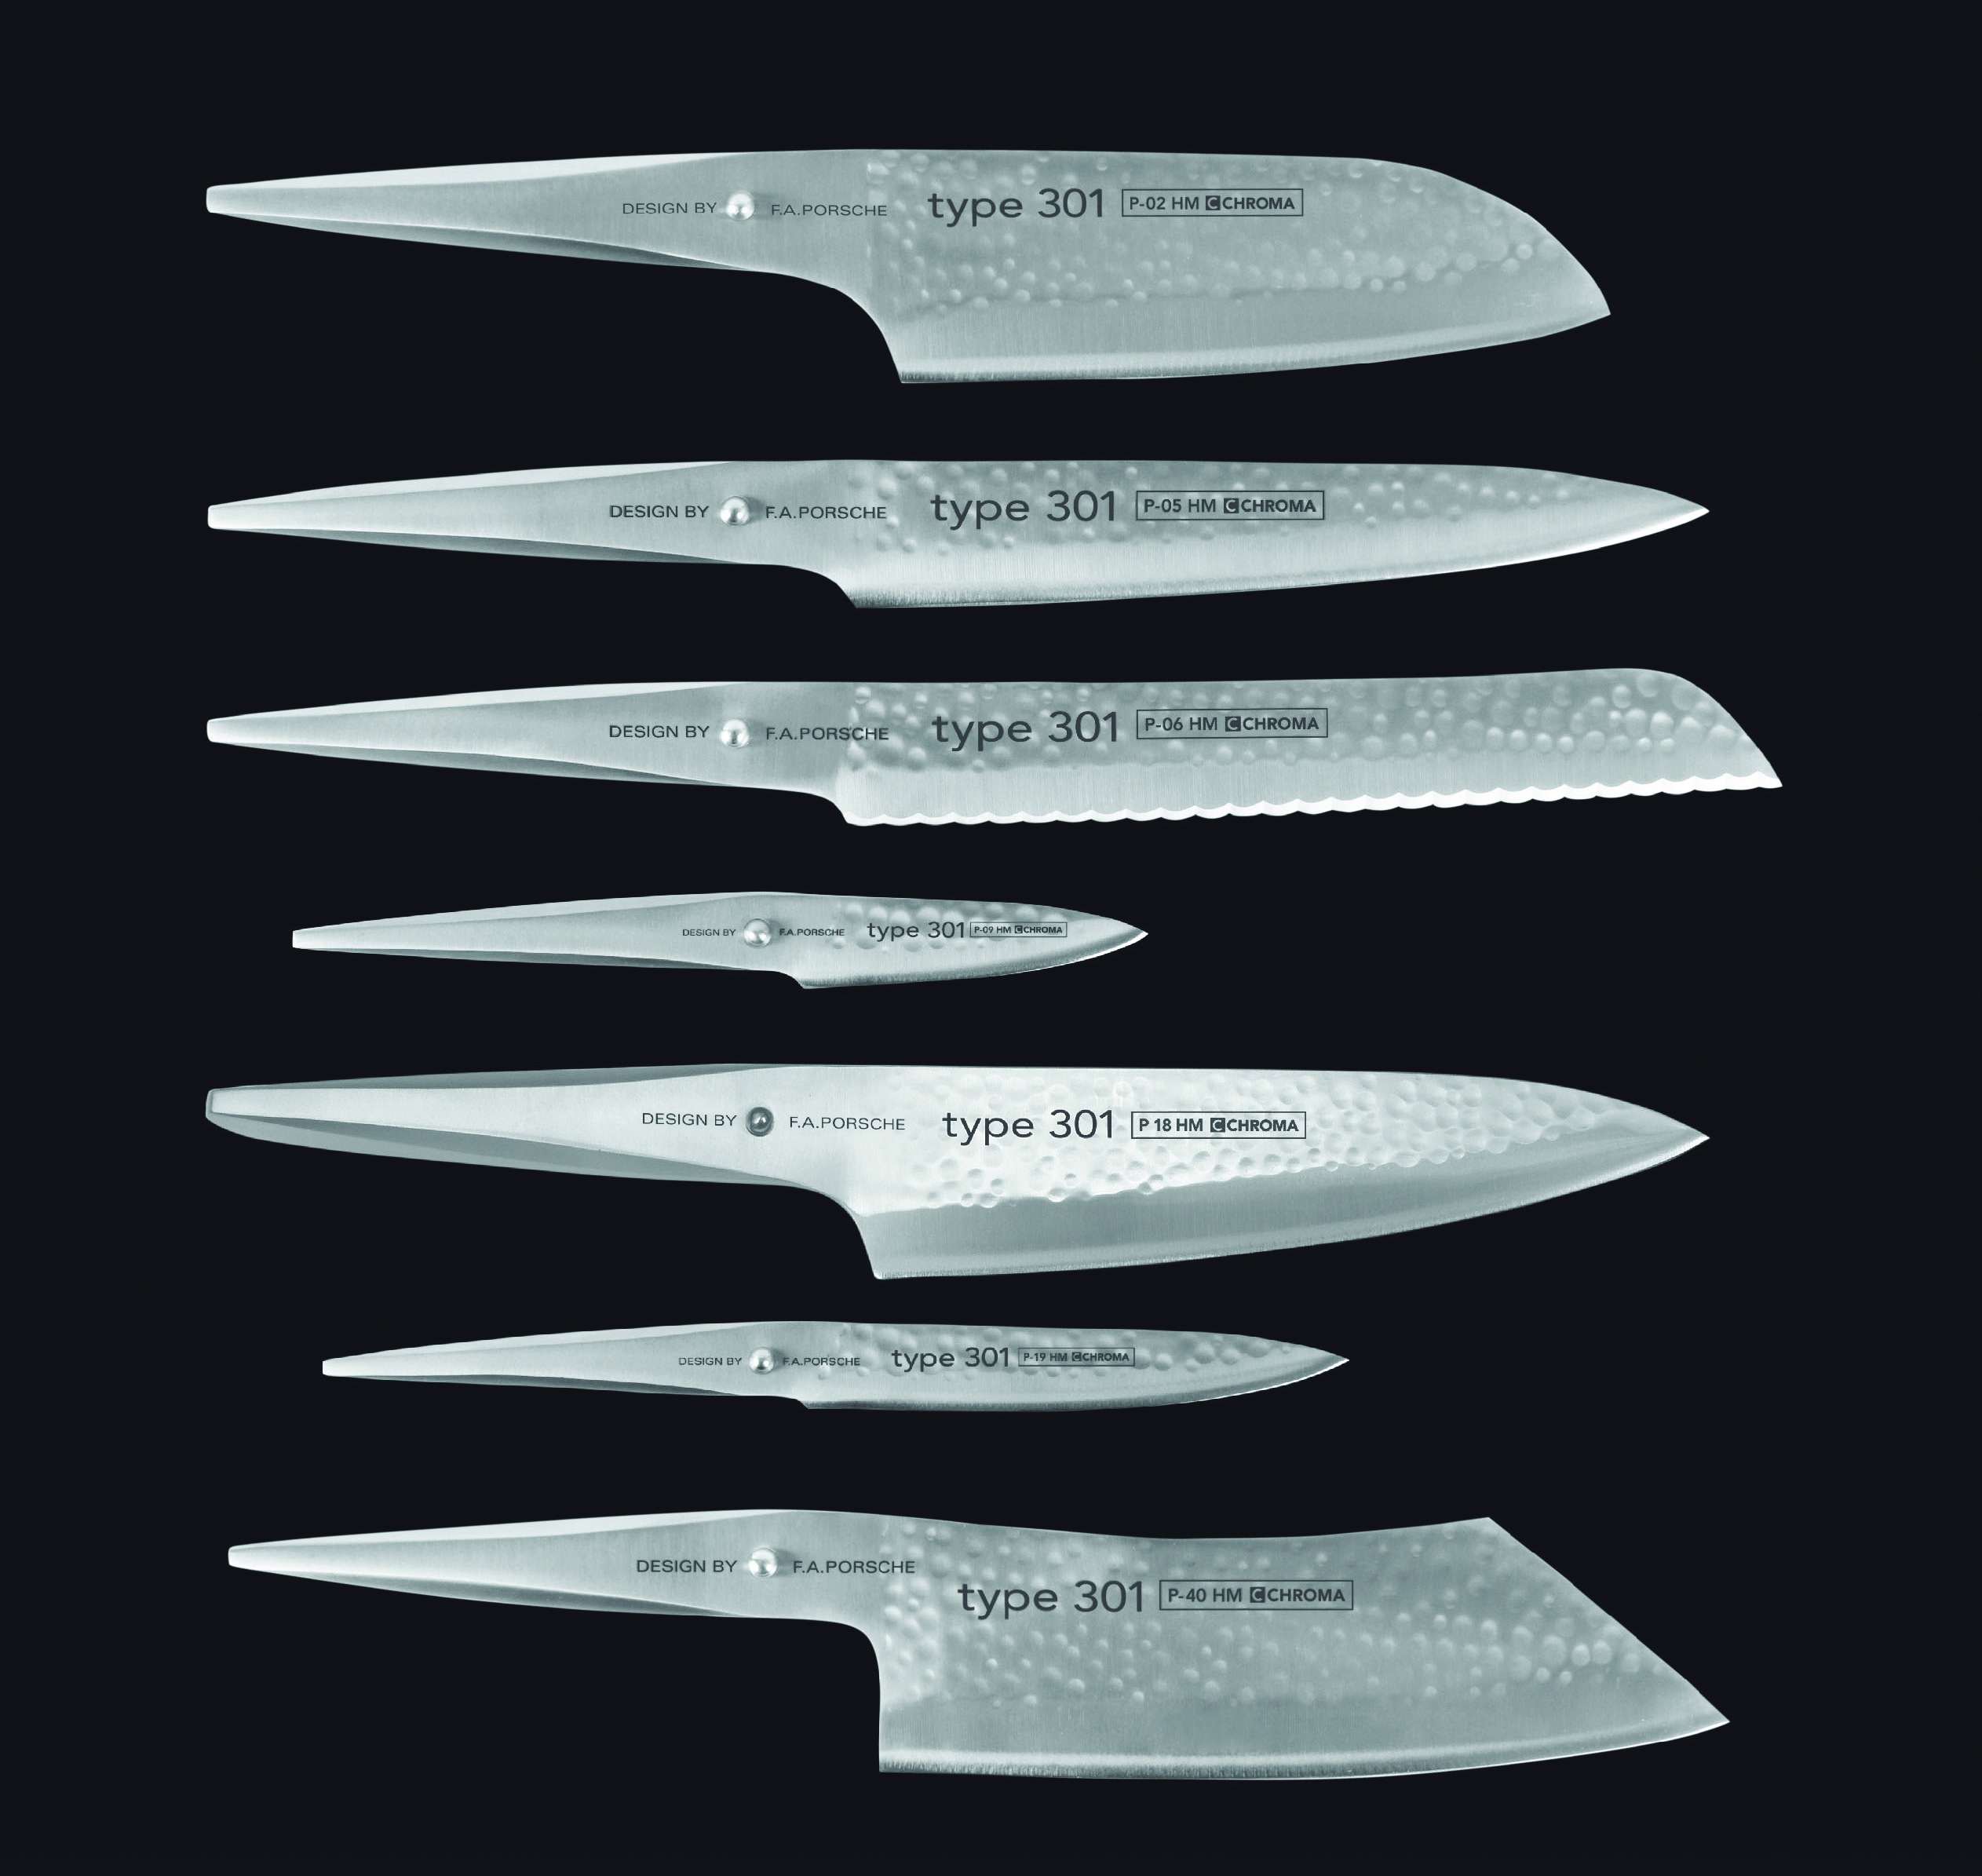 knives archives kitchenware news u0026 housewares reviewkitchenware